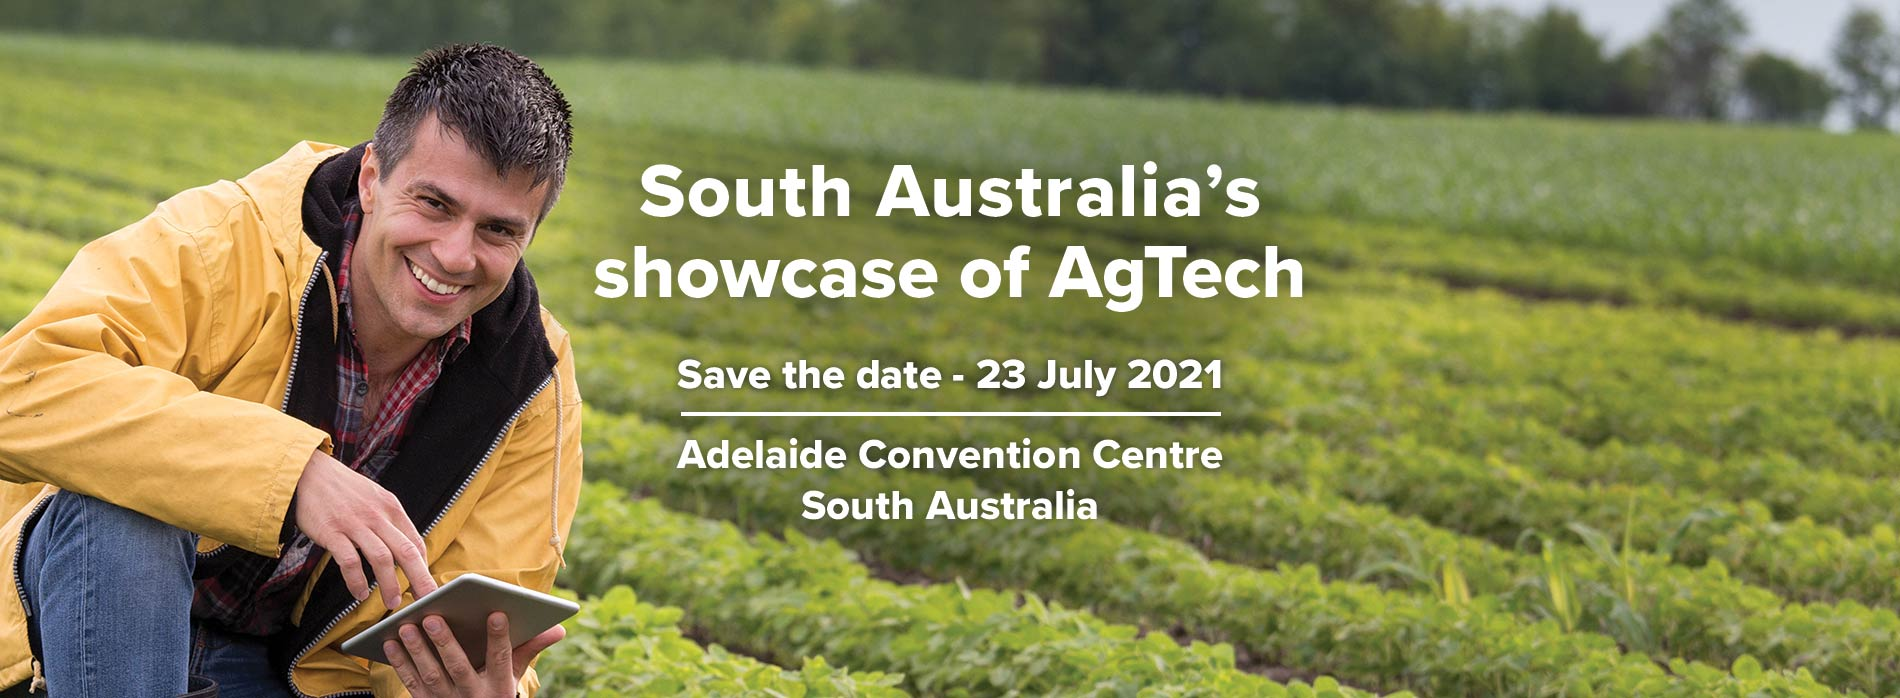 South Australia's showcase of AgTech. Save the date, 23 July 2021, Adelaide Convention Centre, South Australia.